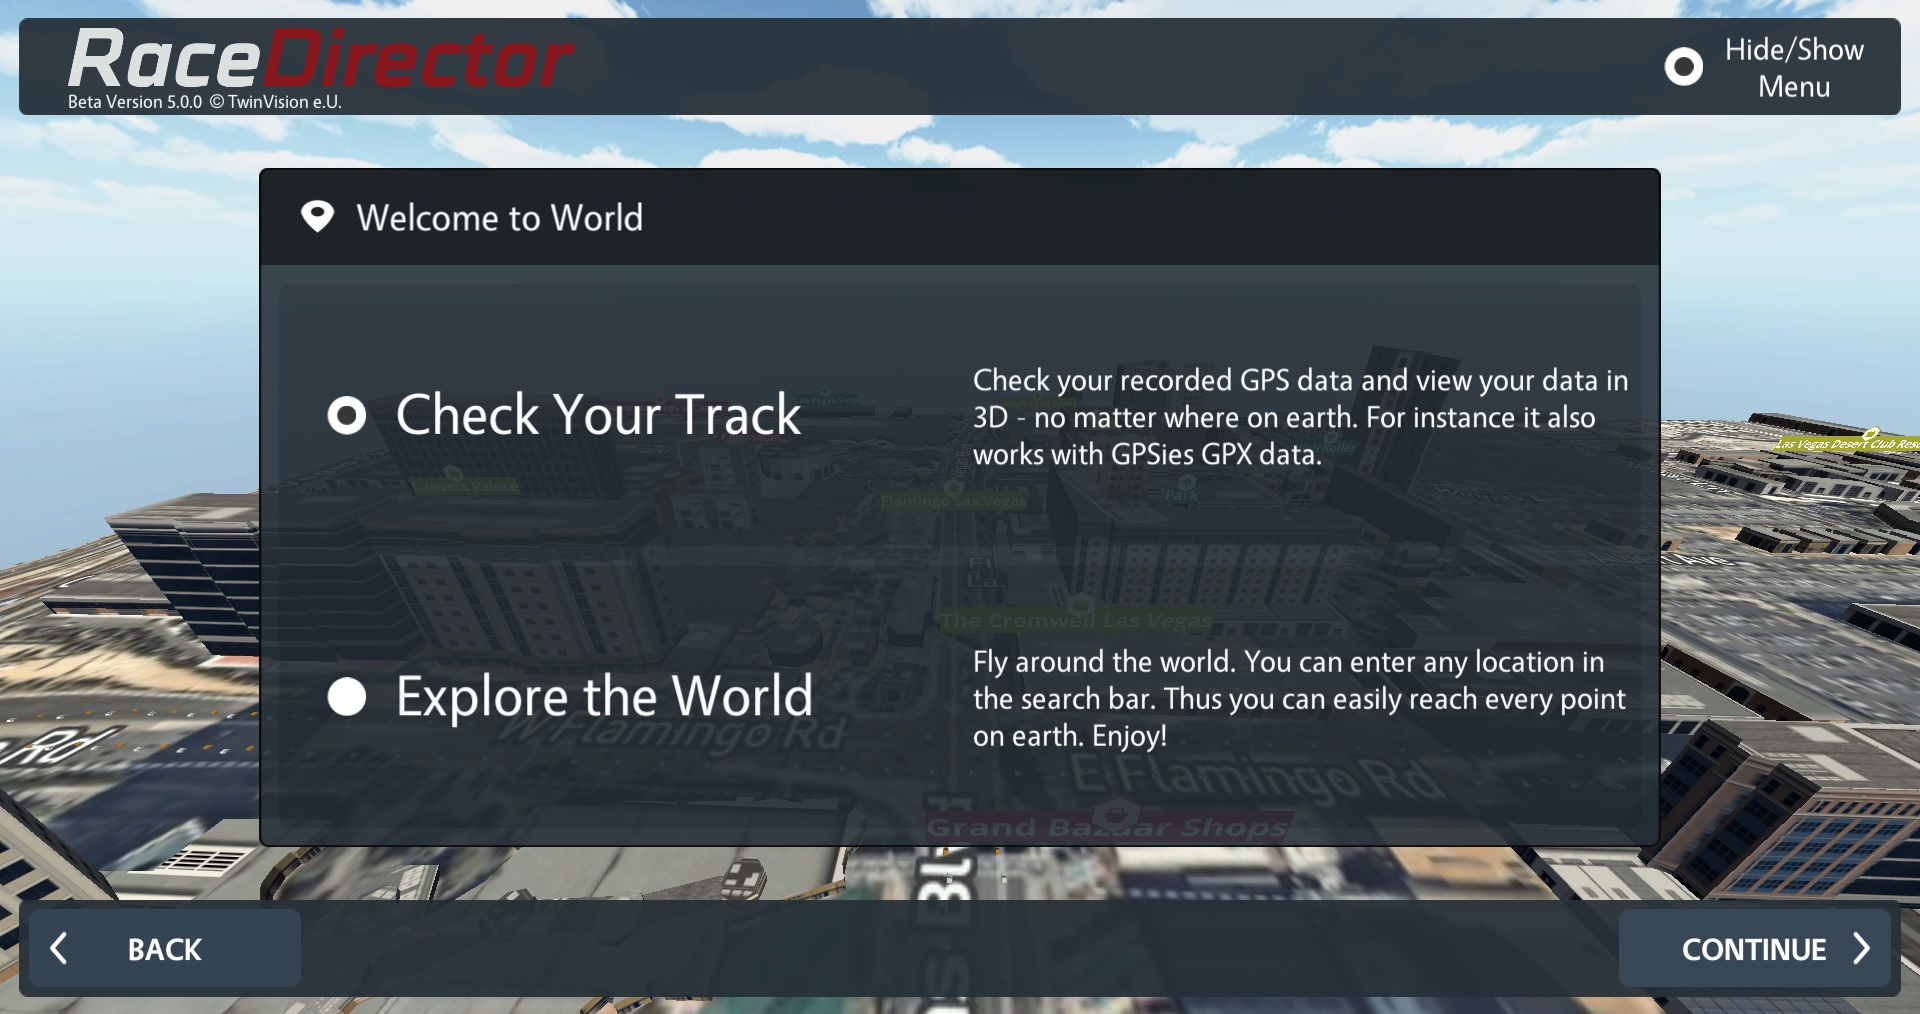 RaceDirector World Check Your Track Menu 2